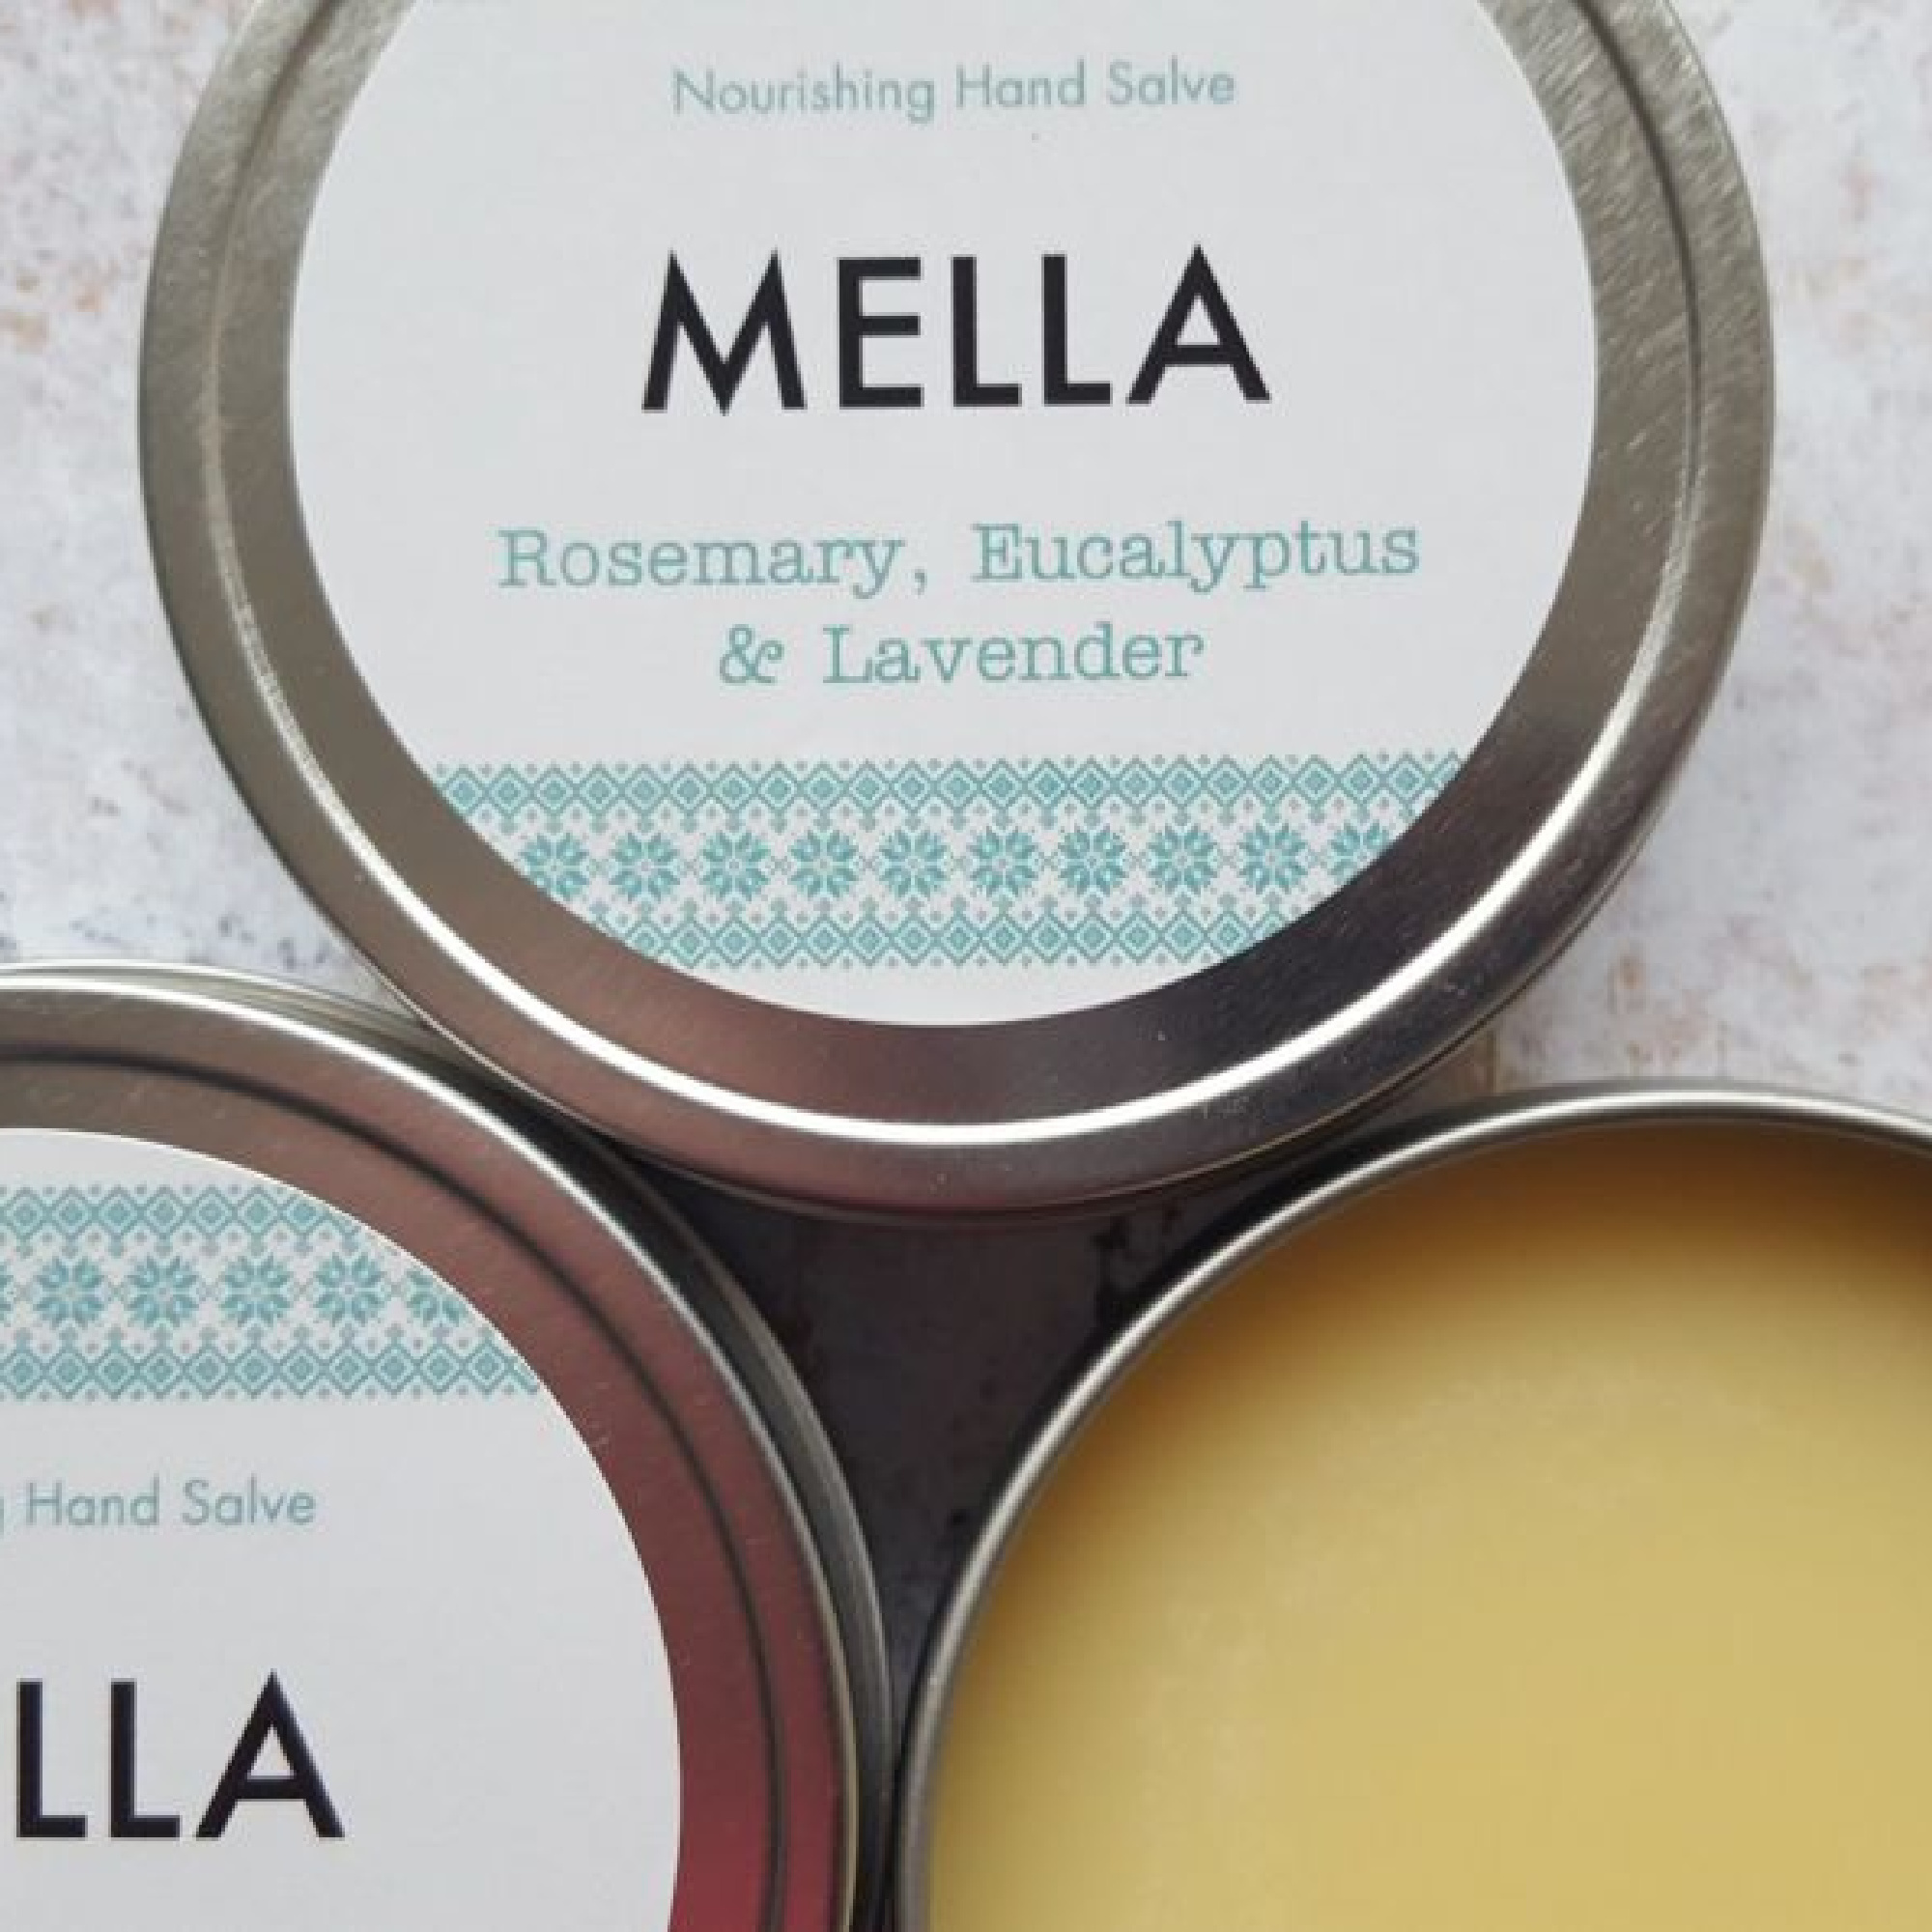 Nourishing Botanical Hand Balm by Mella